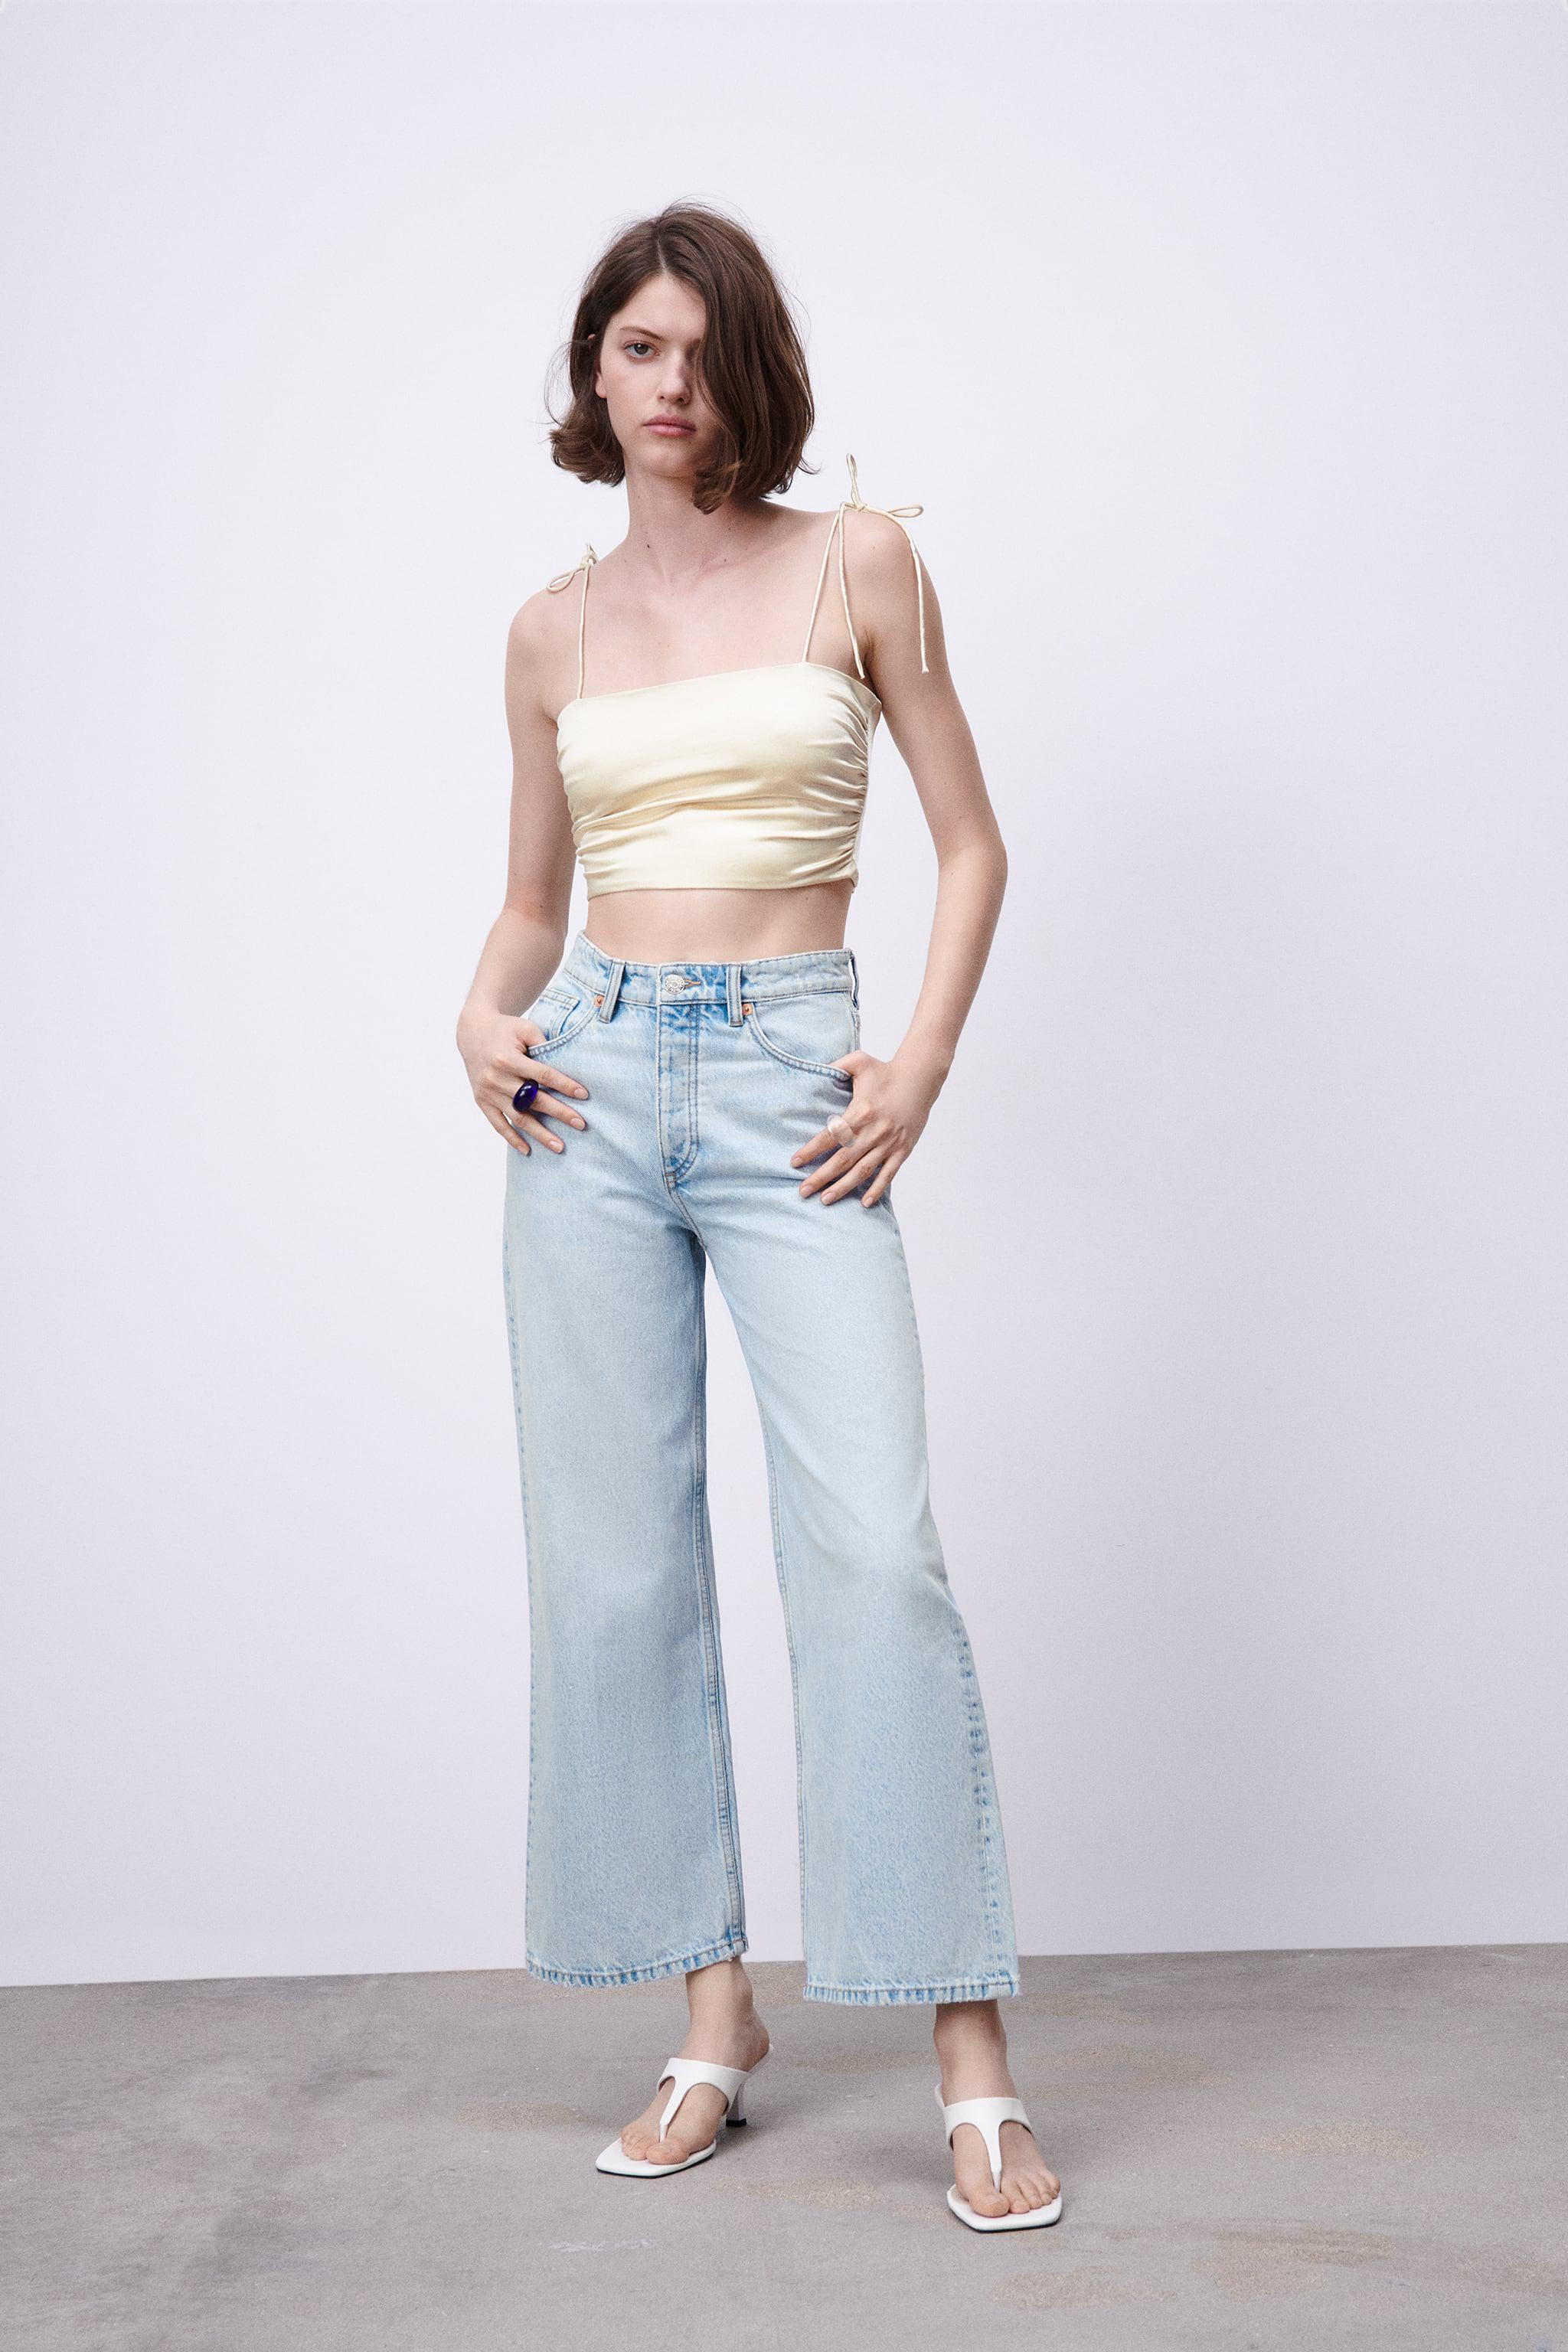 SATIN EFFECT STRAPPY TOP